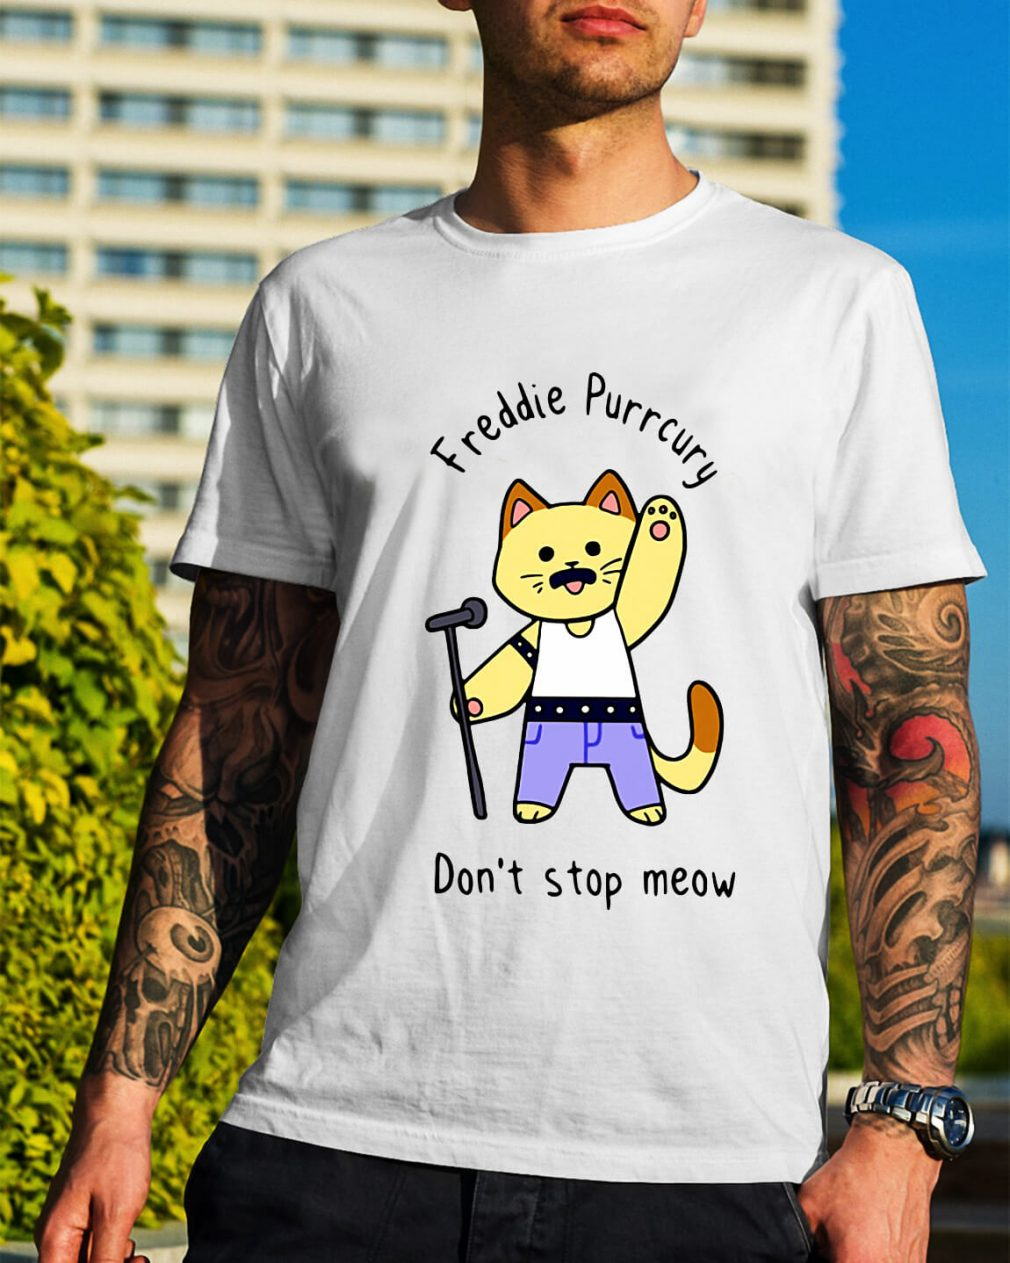 Freddie Purrcury don't stop meow Happy New Year shirt